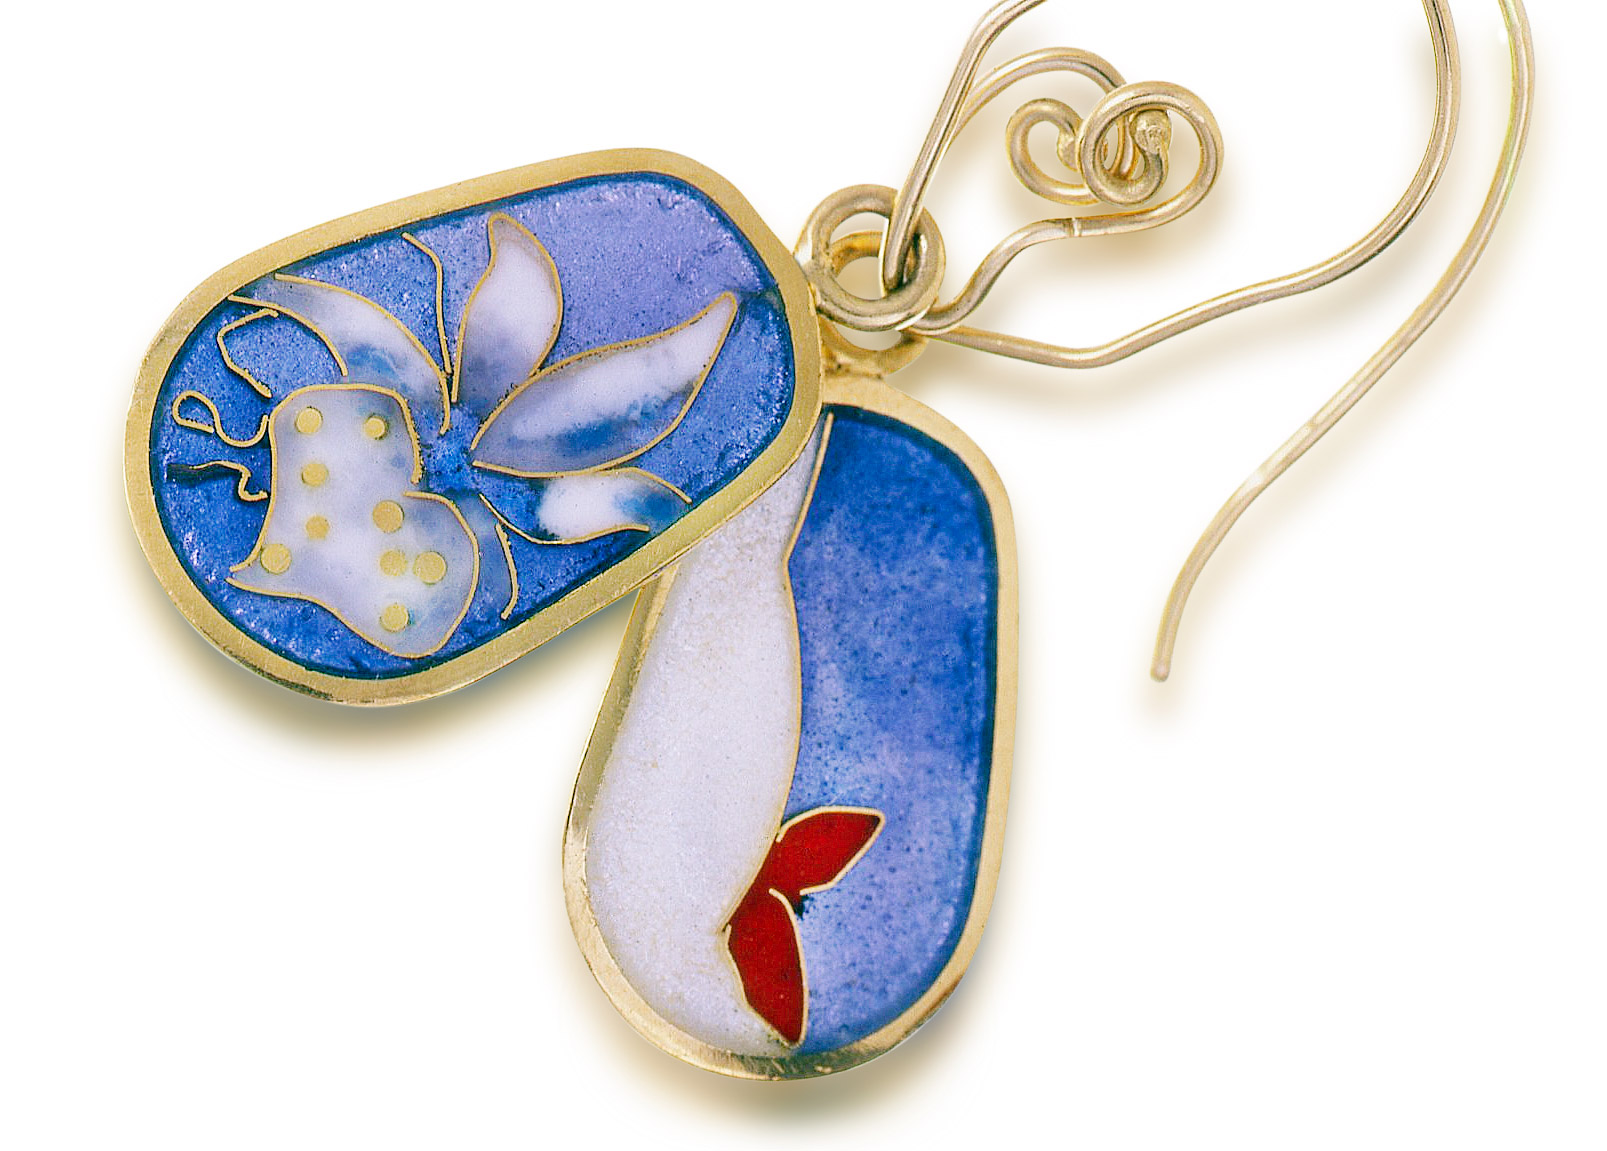 Cloisonne Jewelry | Orchid | Enamel Jewelry created by Patsy Croft